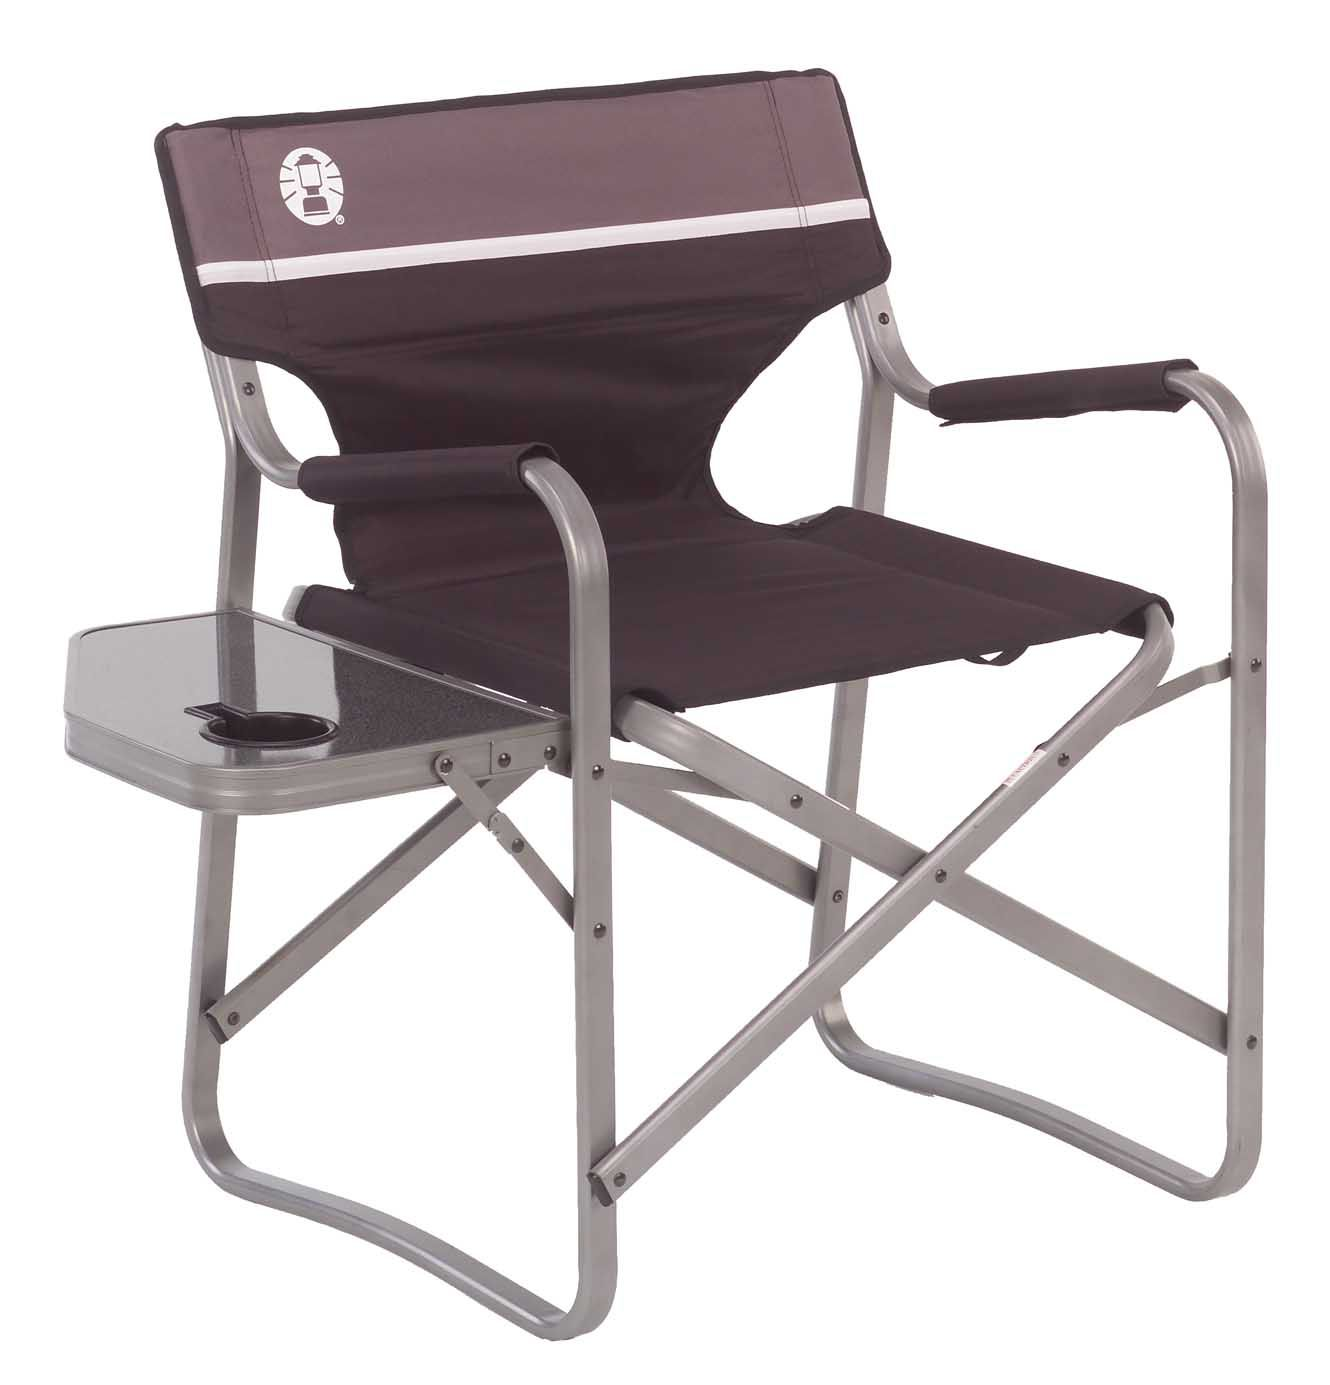 folding chair parts manufacturer true innovations chairs camping coleman aluminum deck